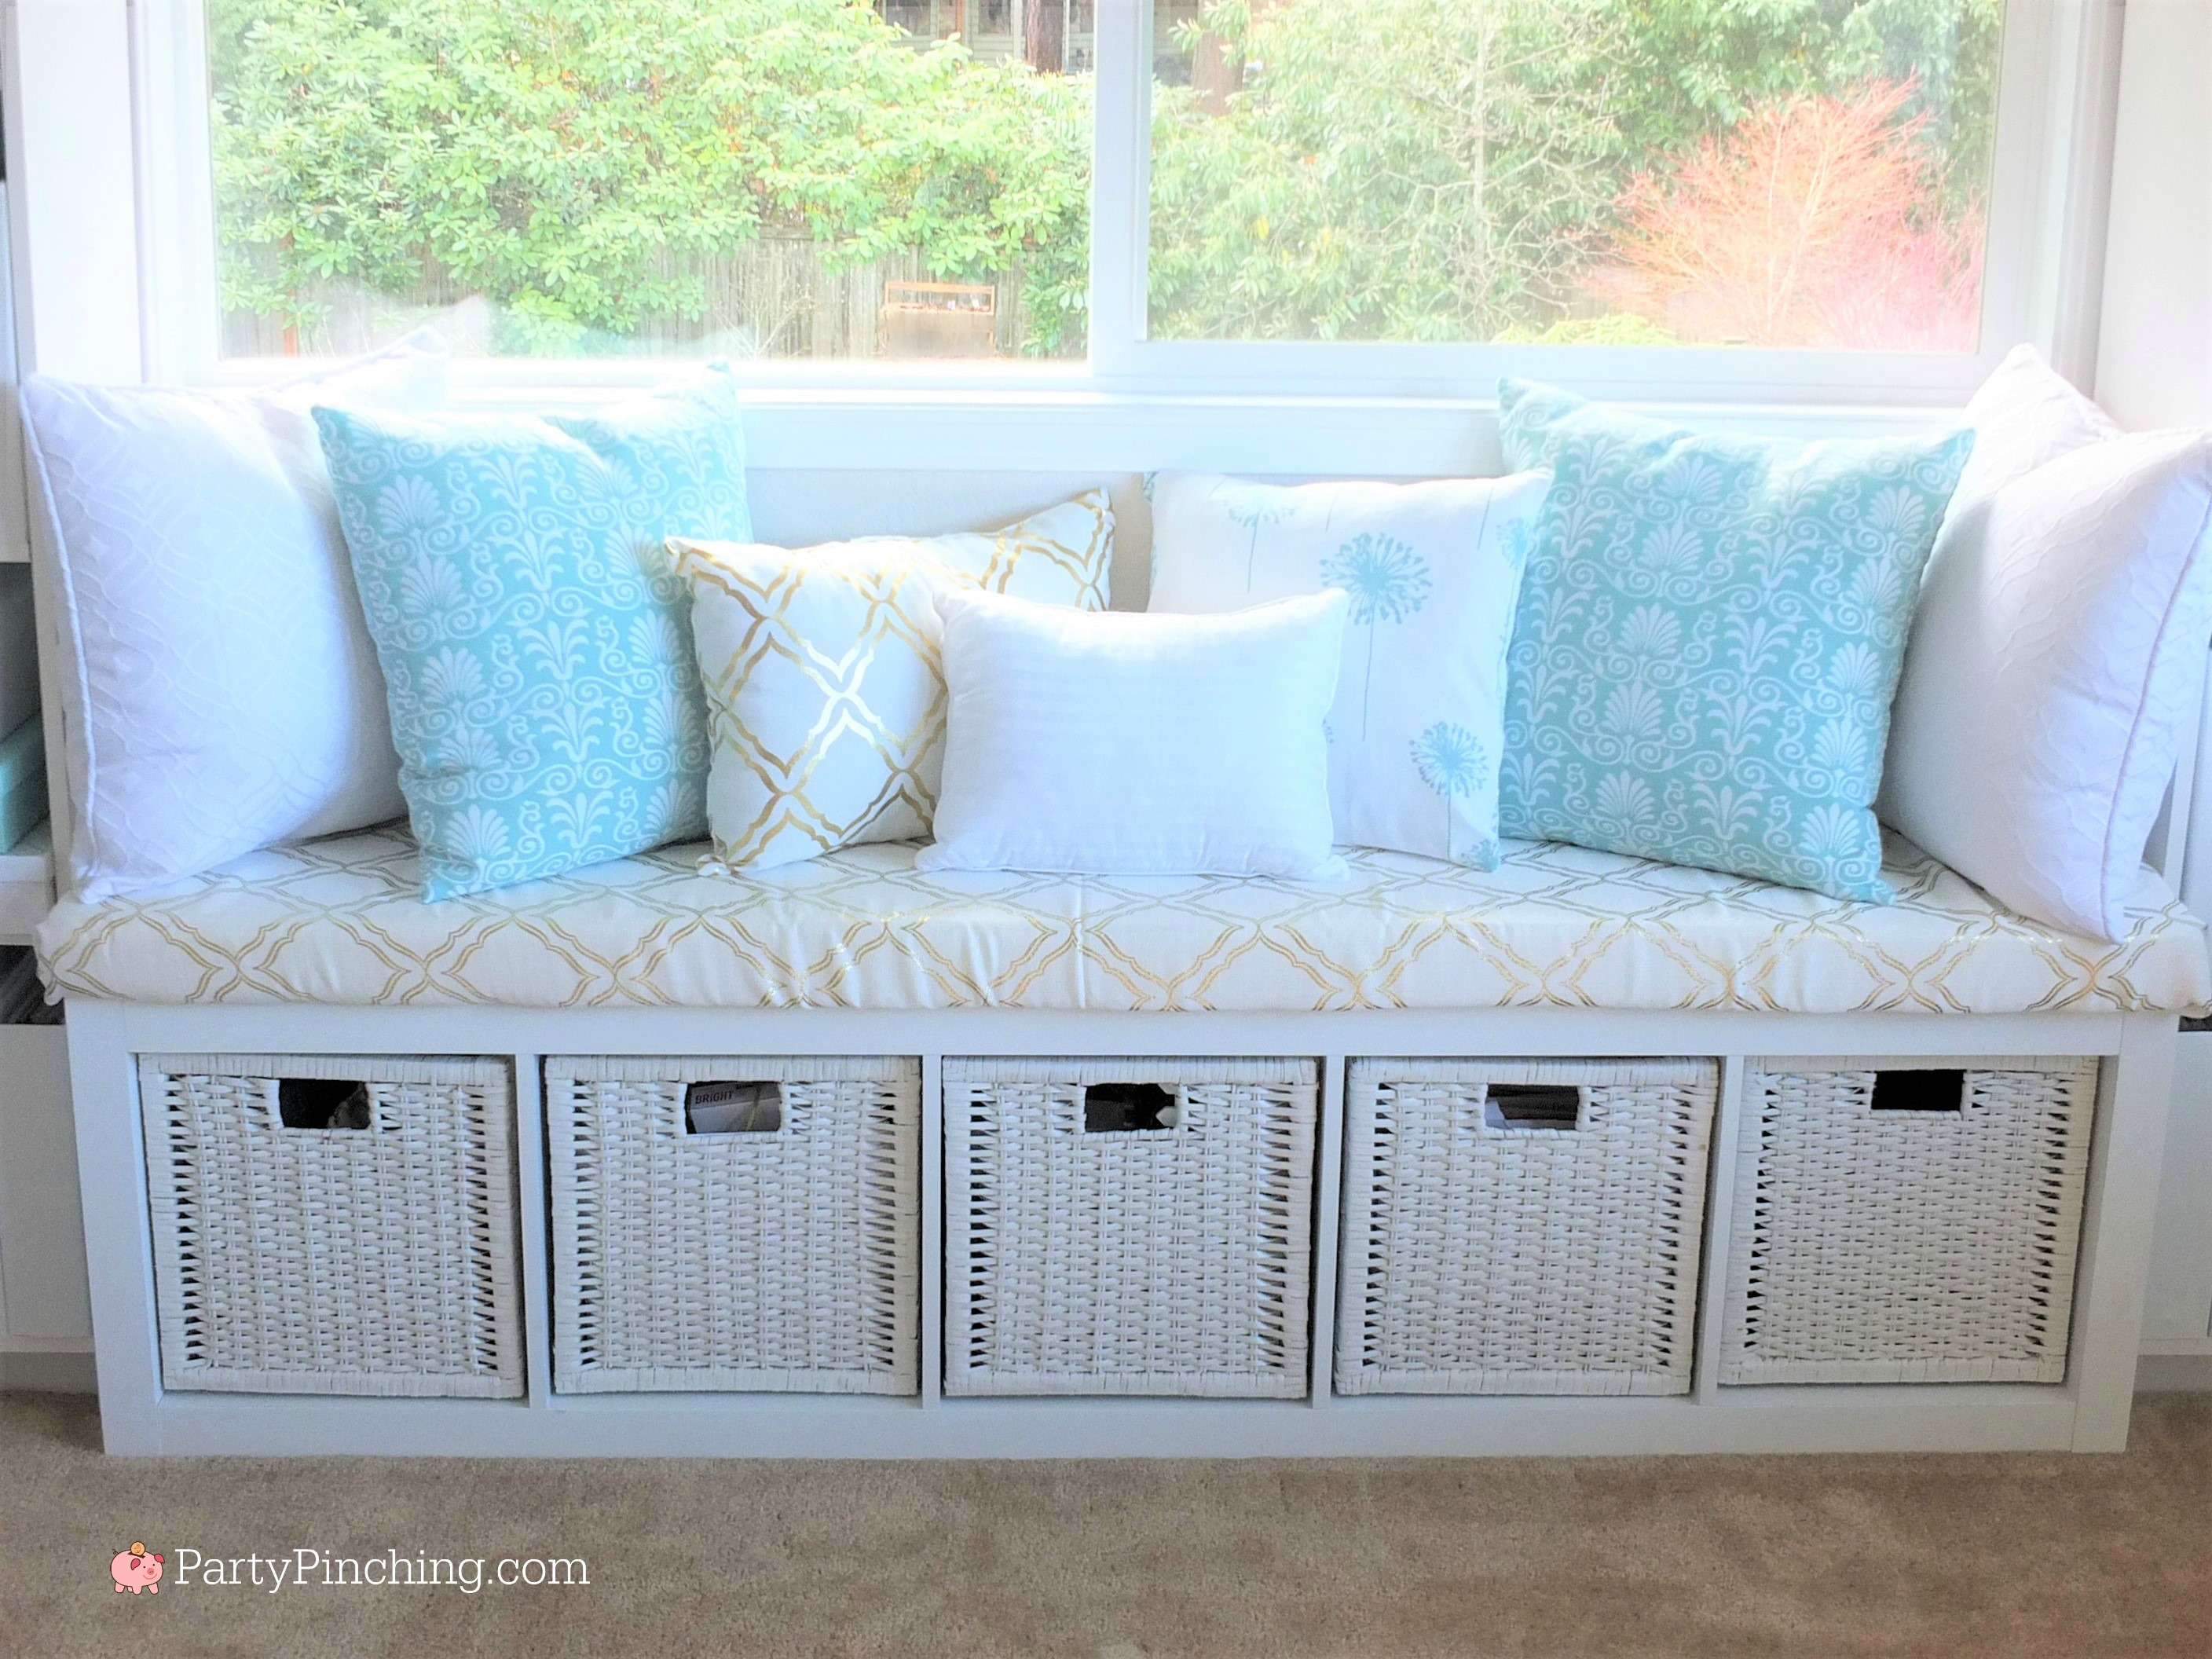 Tiffany blue home office, pretty home office makeover, home office remodel, budget friendly home office, Tiffany blue gold white office, pretty craft room remodel makeover, Tiffany blue home office makeover, Tiffany blue office interior design, pretty home office on a budget, beautiful home office, office with Tiffany blue gold and white accents, white office chair, feminine home office, home office with window seat, DIY easy window seat